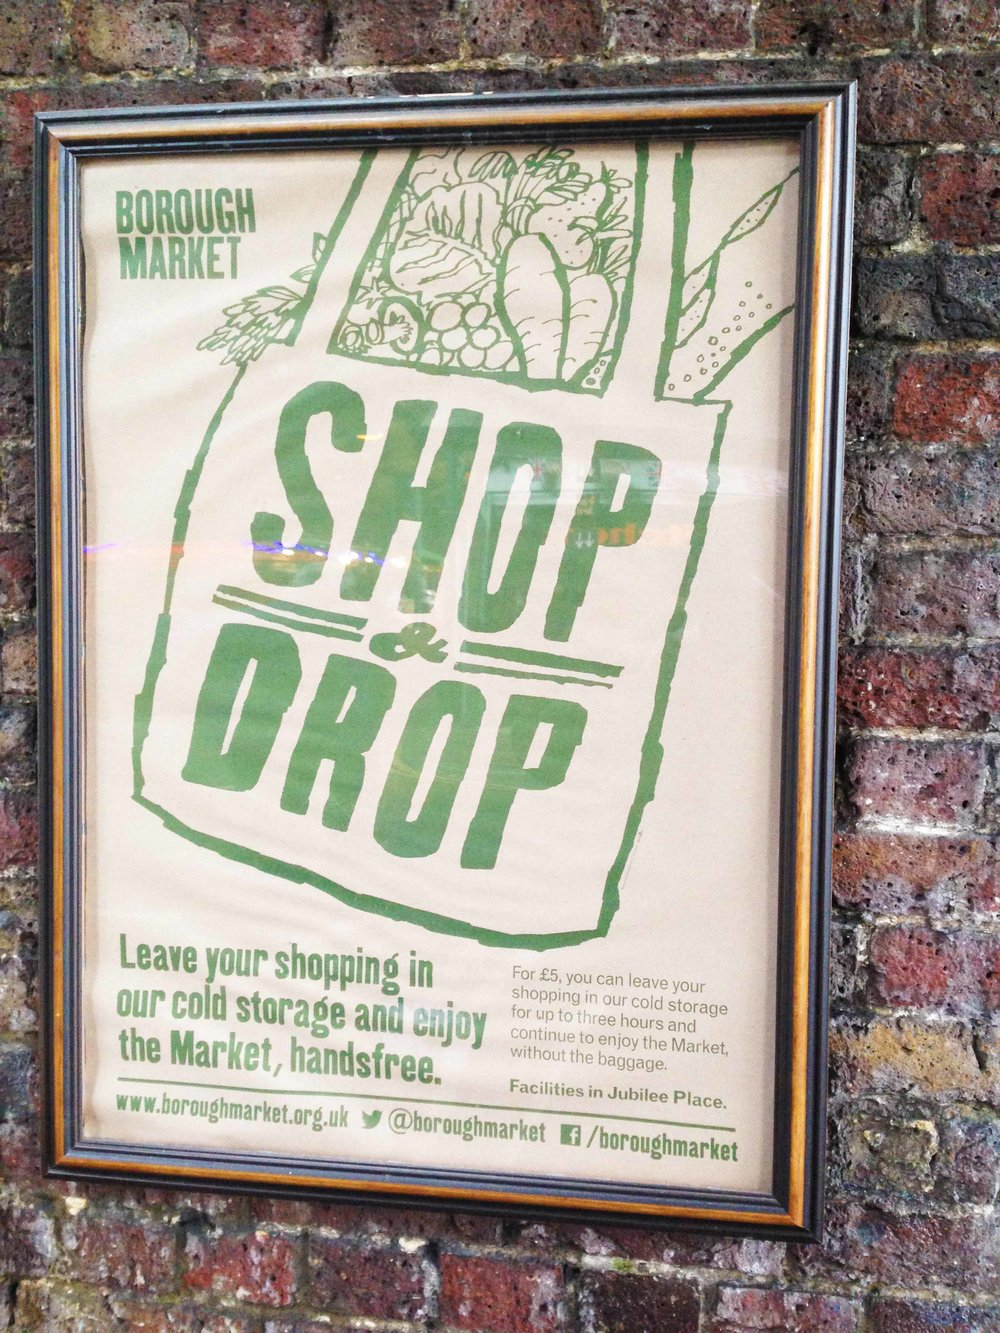 Borough-Market-shop-and-drop-poster.jpg